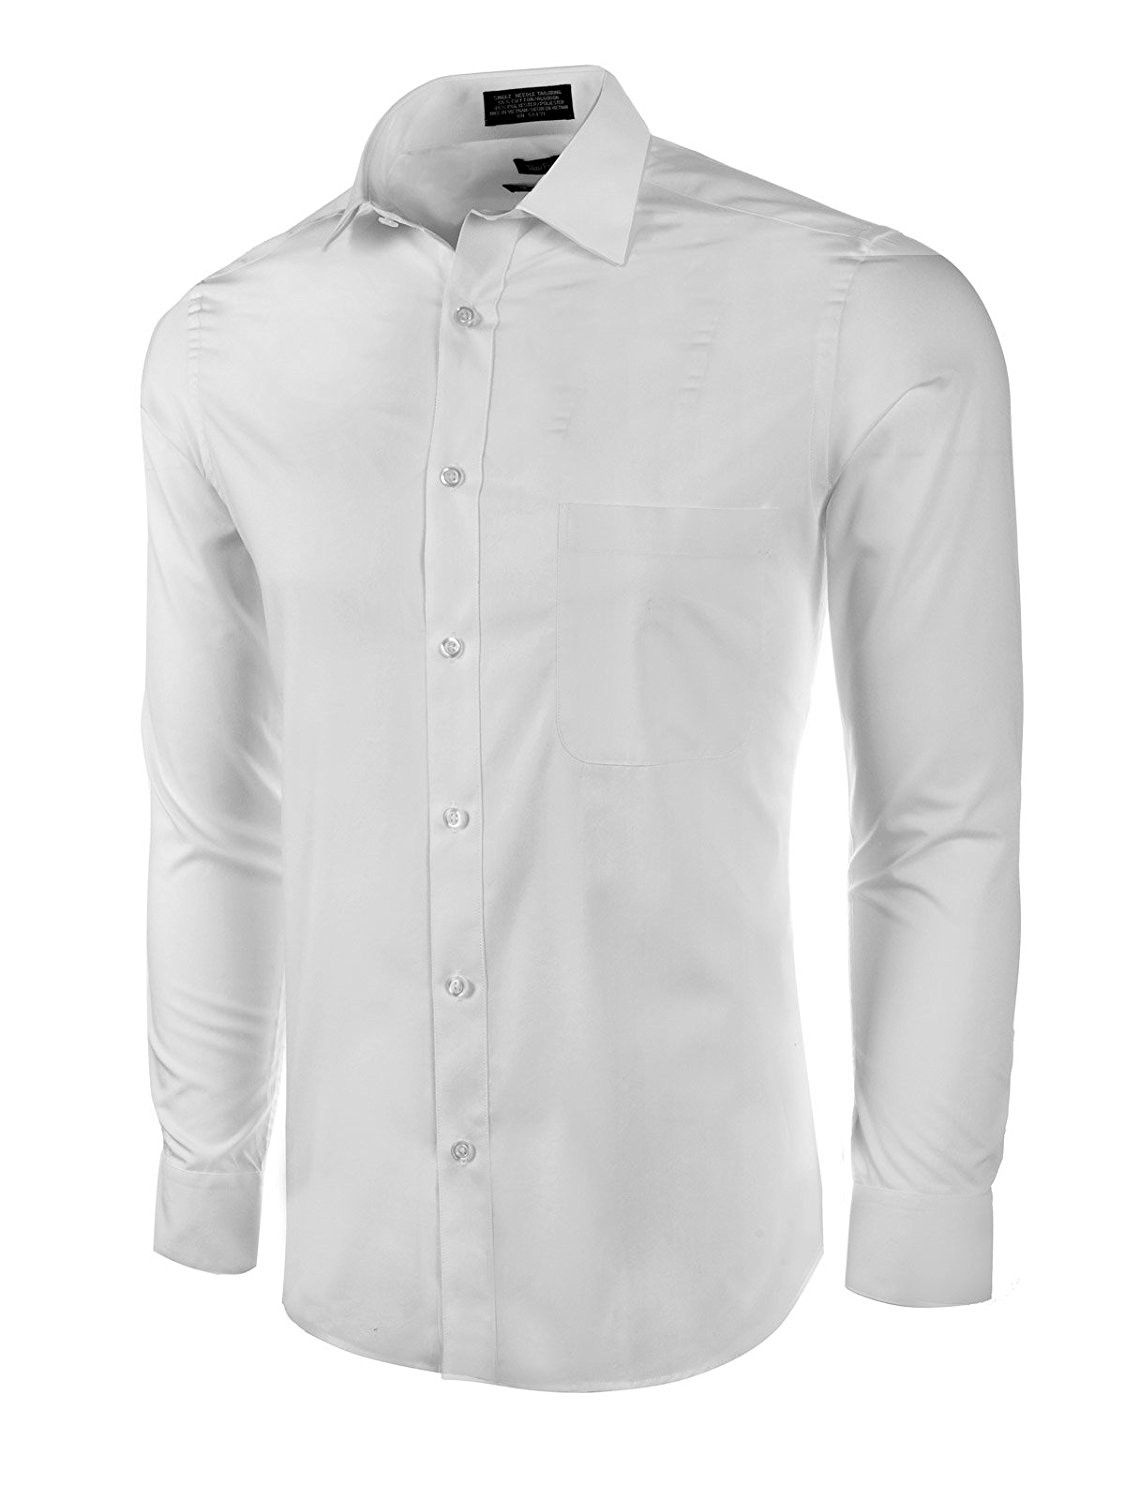 e11aad01c08d Pin by Tyson Crary on Suits | Slim fit dress shirts, Shirts, Shirt Dress